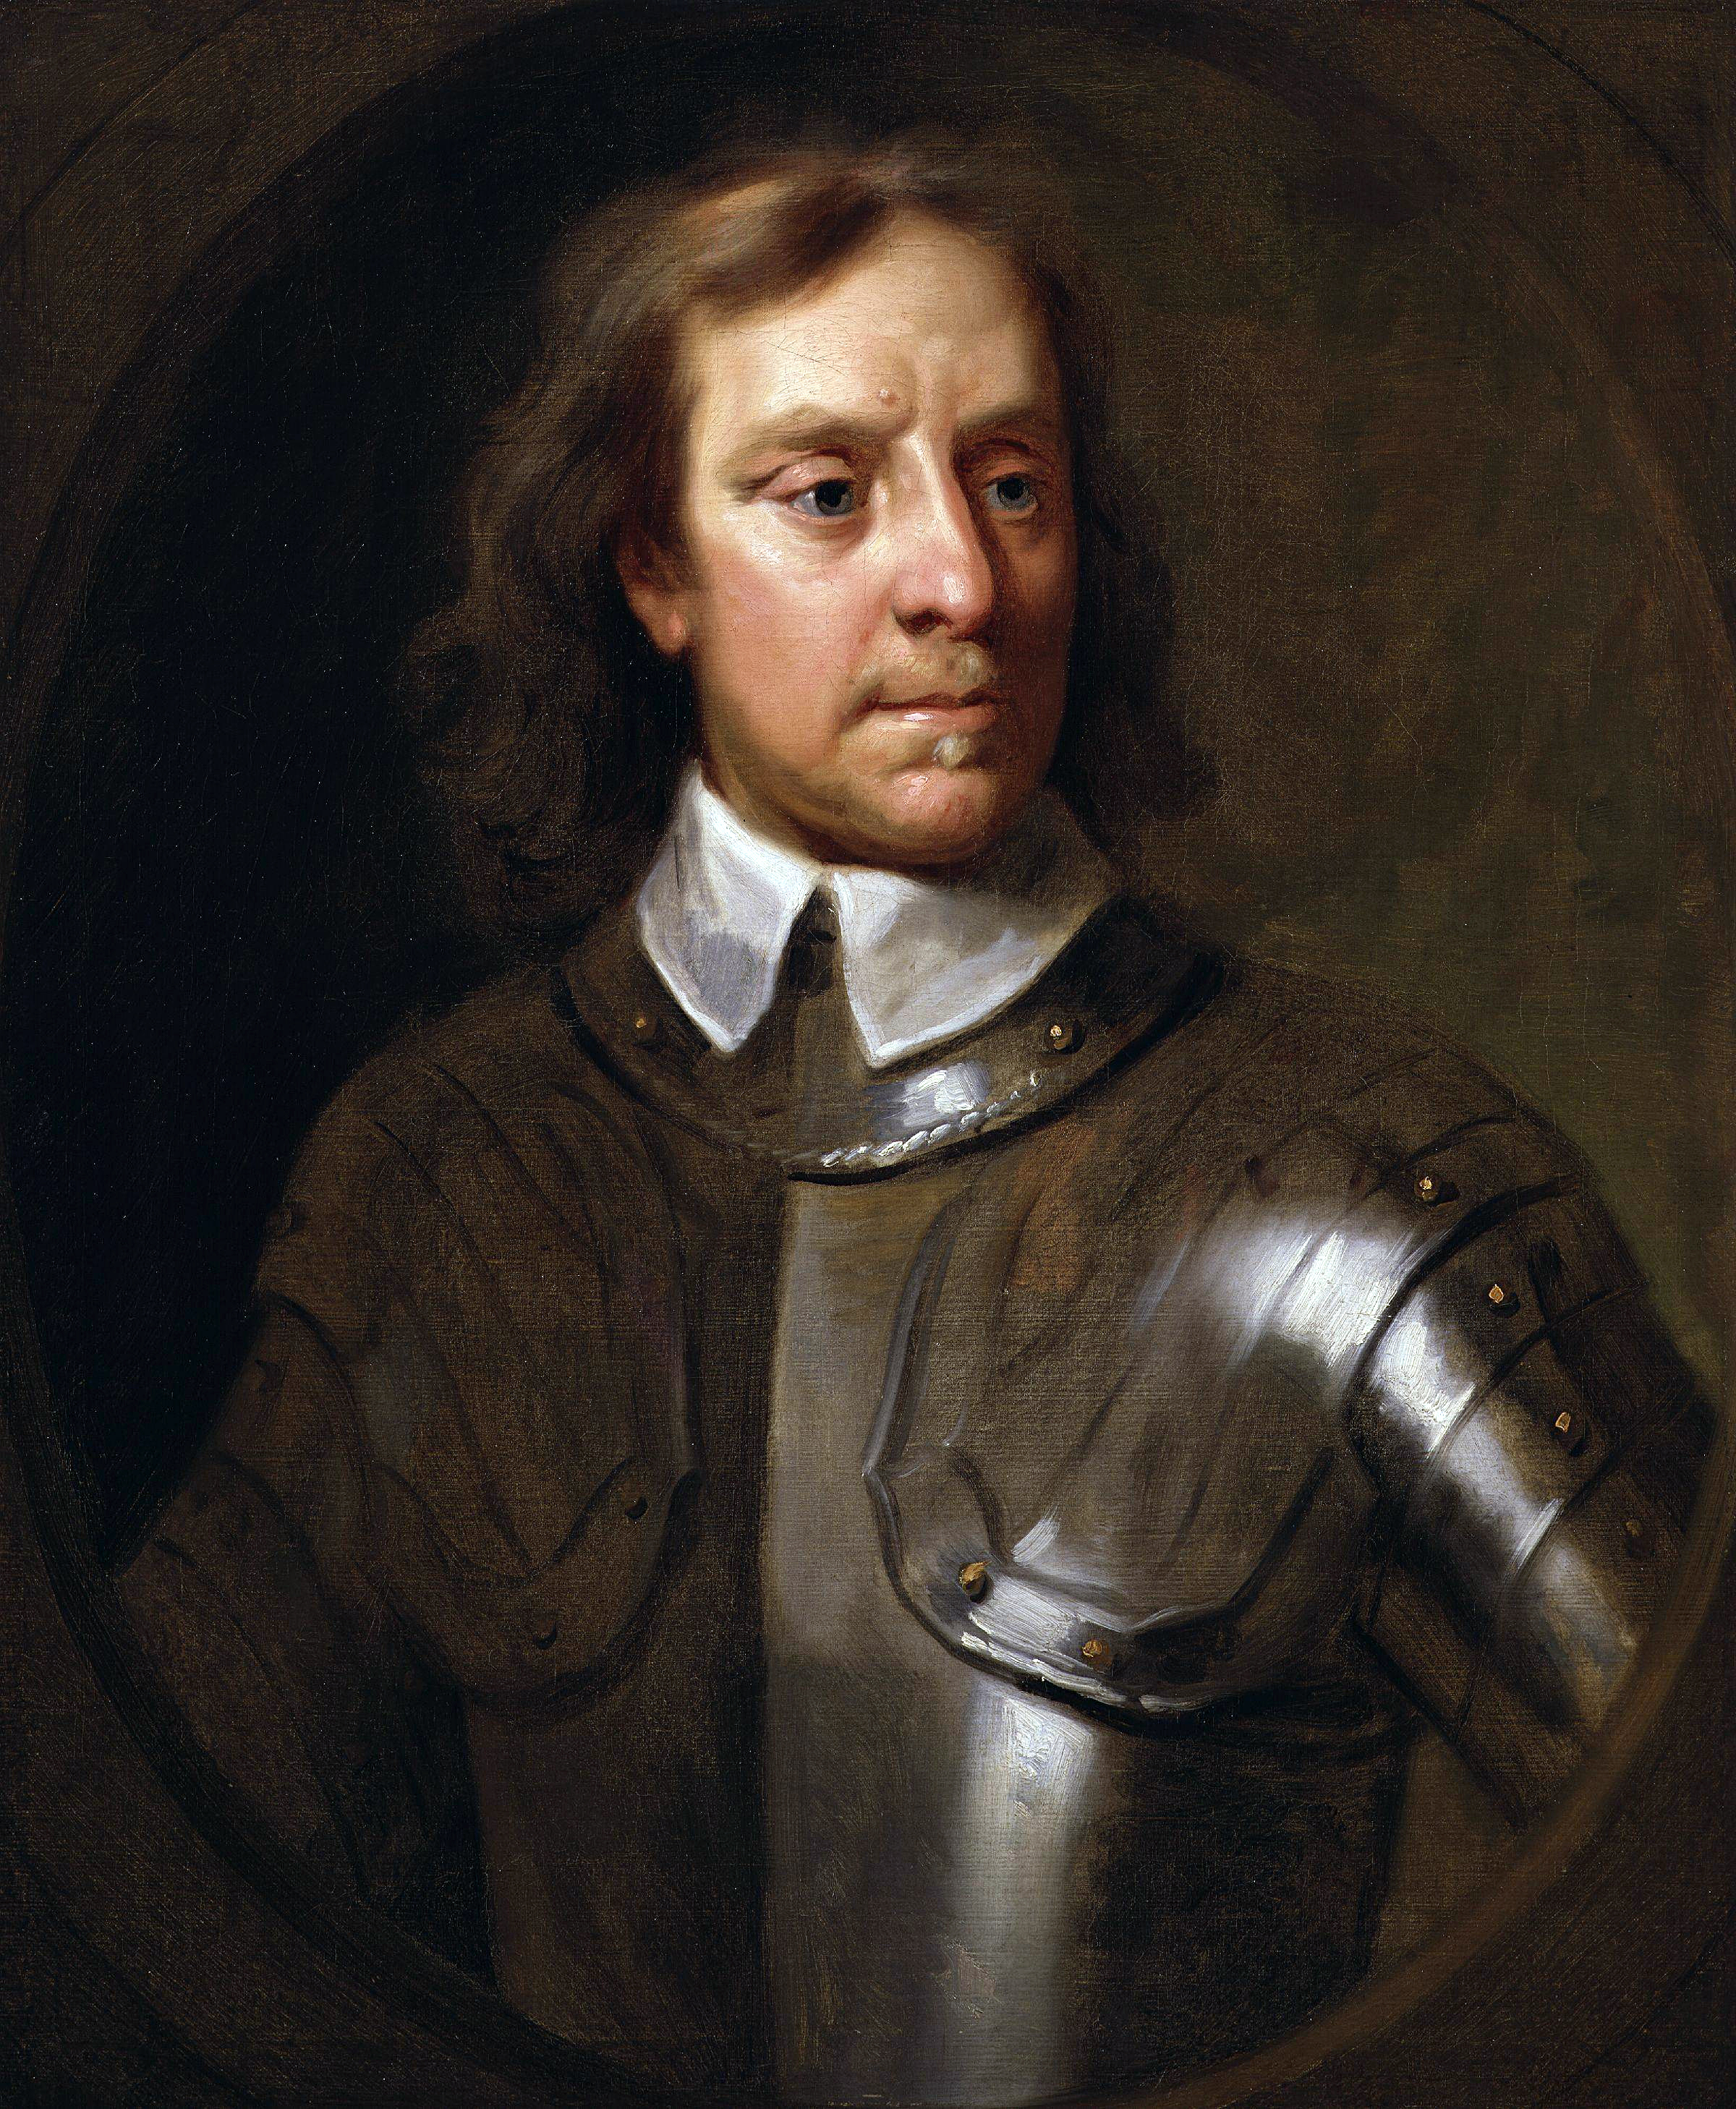 https://upload.wikimedia.org/wikipedia/commons/2/24/Oliver_Cromwell_by_Samuel_Cooper.jpg